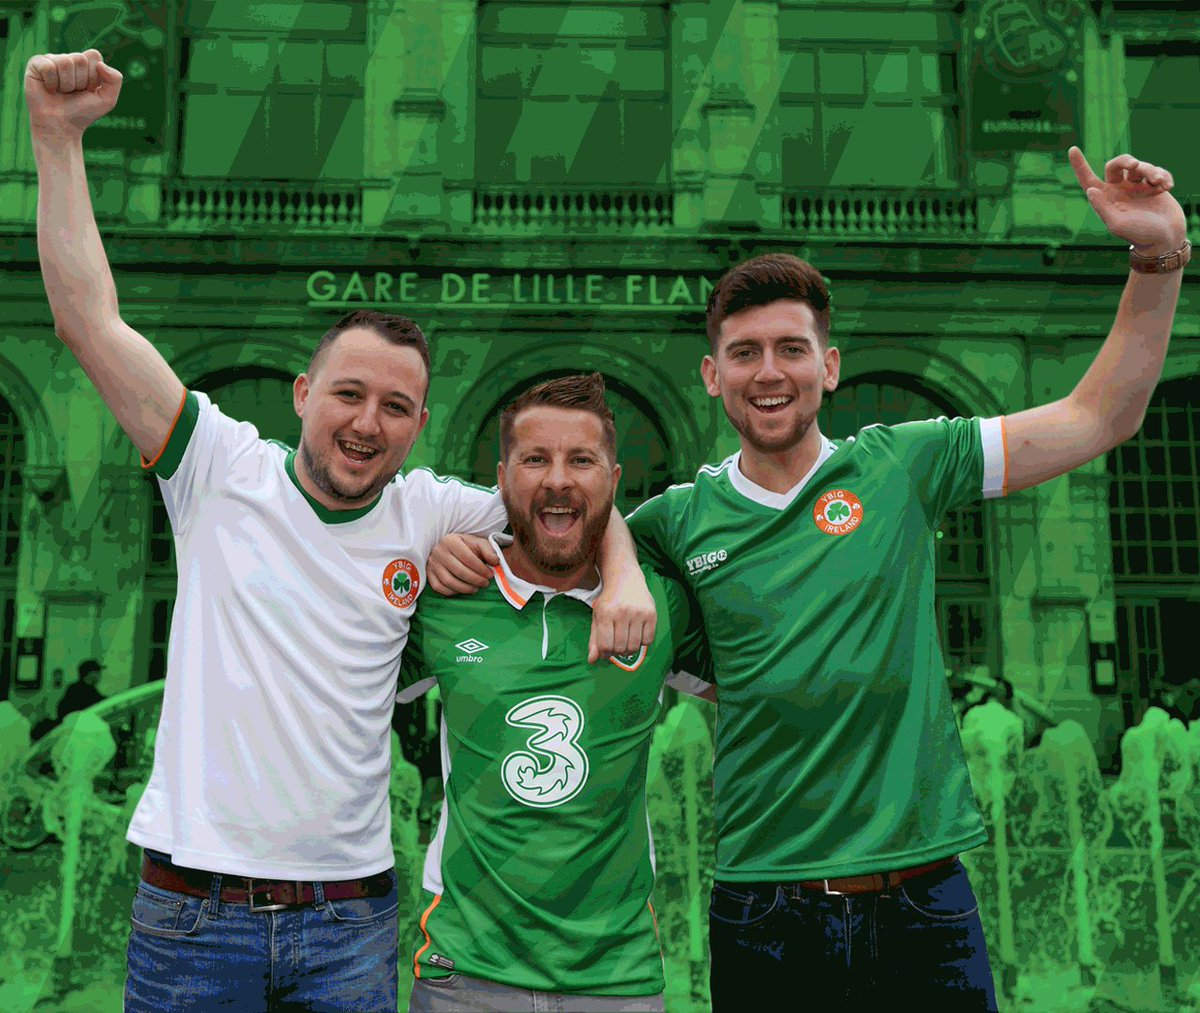 #IRL fans are to be awarded a medal for sportsmanship by The Mayor of Paris. Best fans in the world! #merci https://t.co/c2ELDTdspd